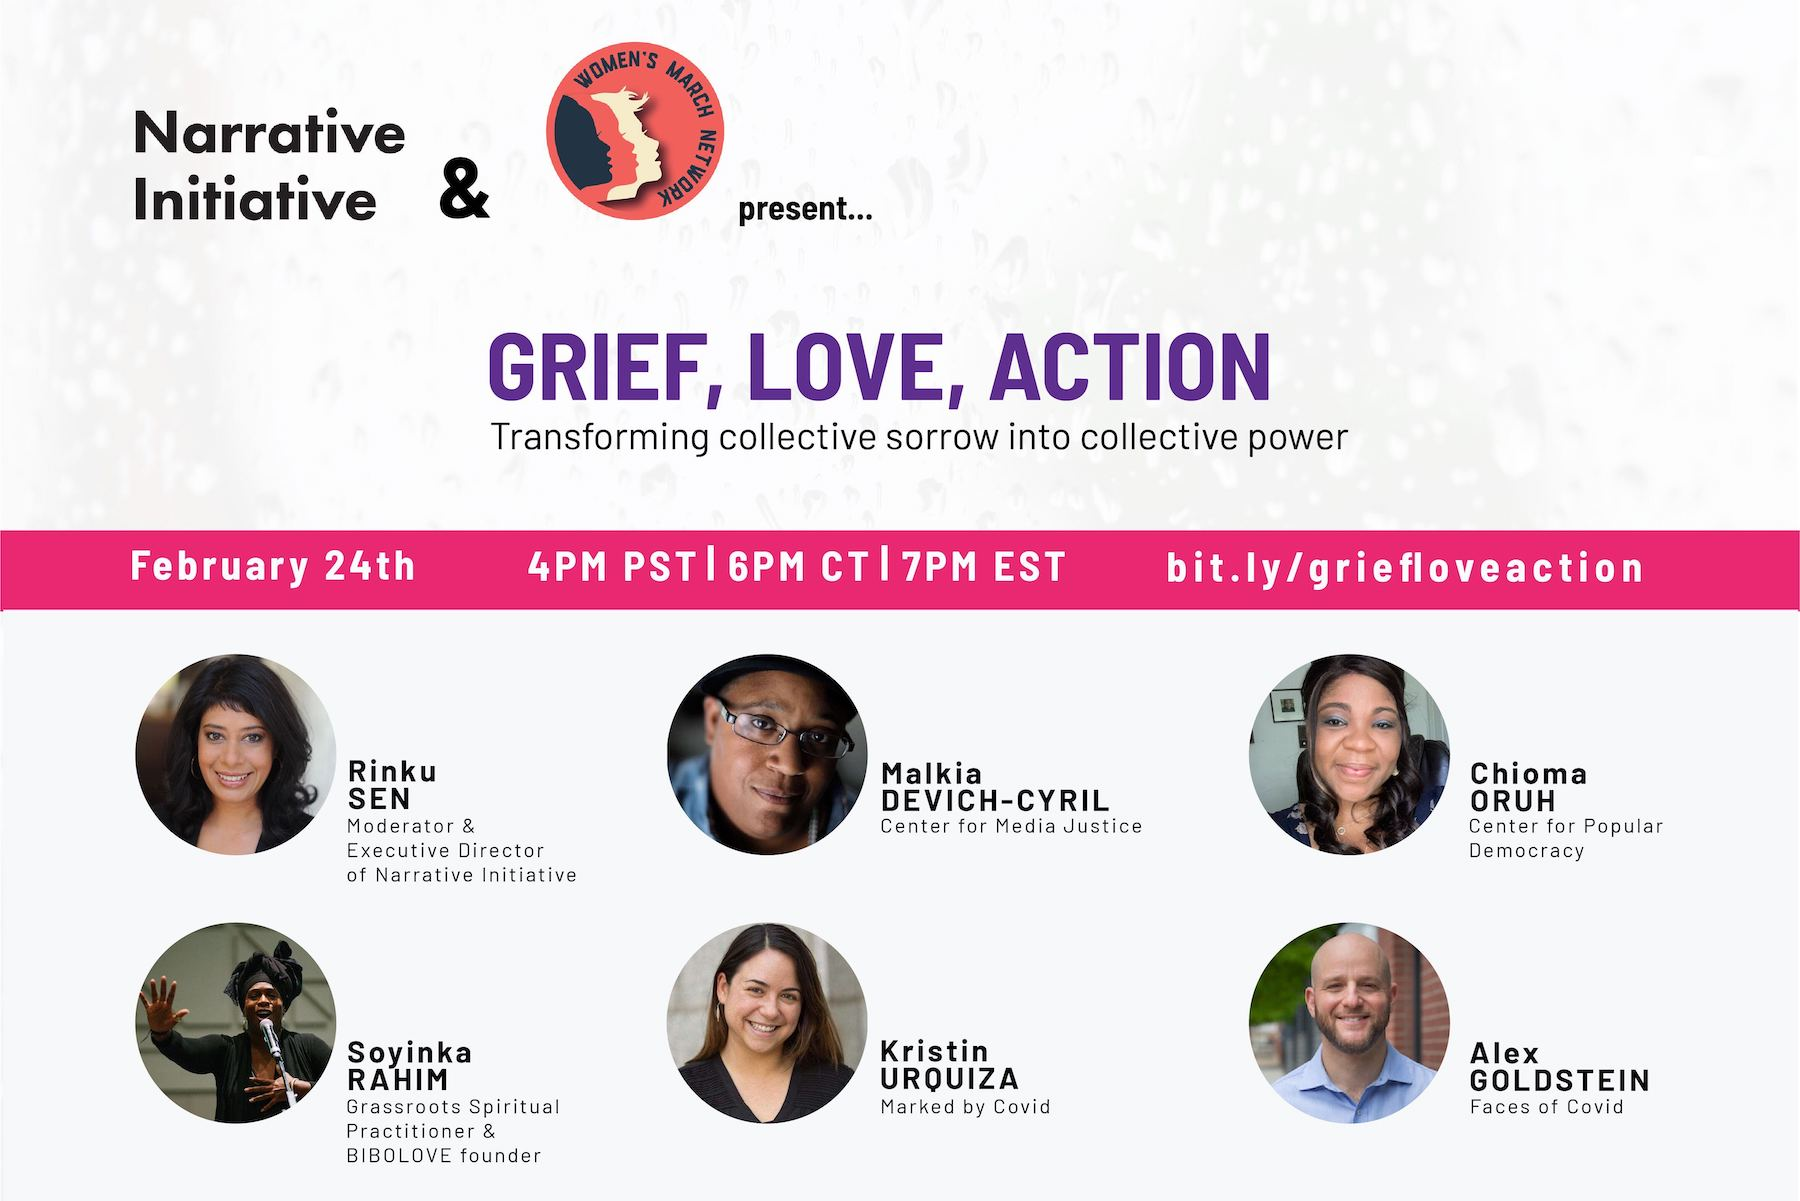 Grief, Love, Action is a webinary co-hosted by Narrative Initiative and the Women's March Network